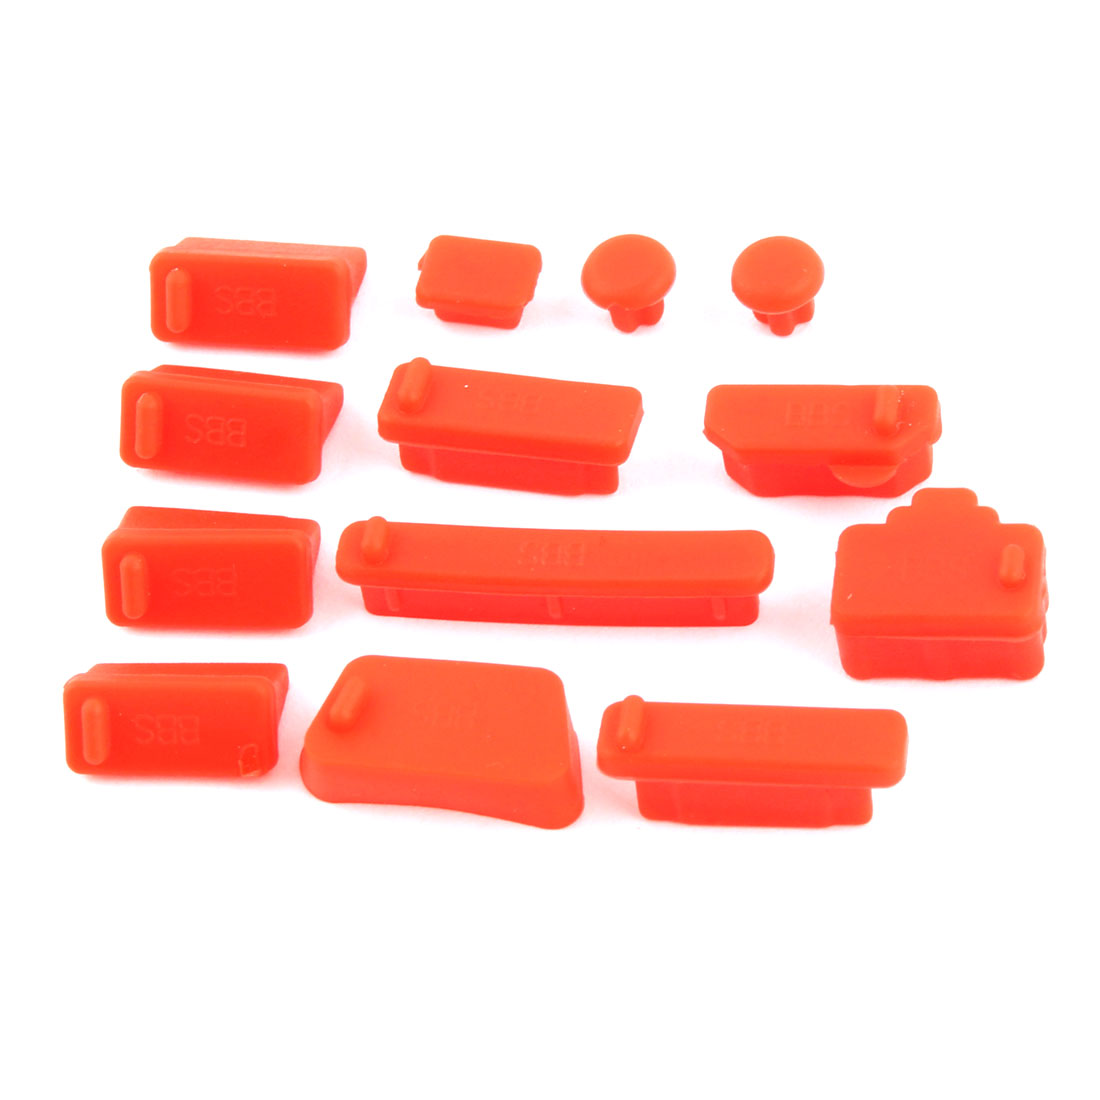 Computer Silicone Universal Dust Stopper Cover Notebook Anti Dust Connector Cap Set Red 13 in 1